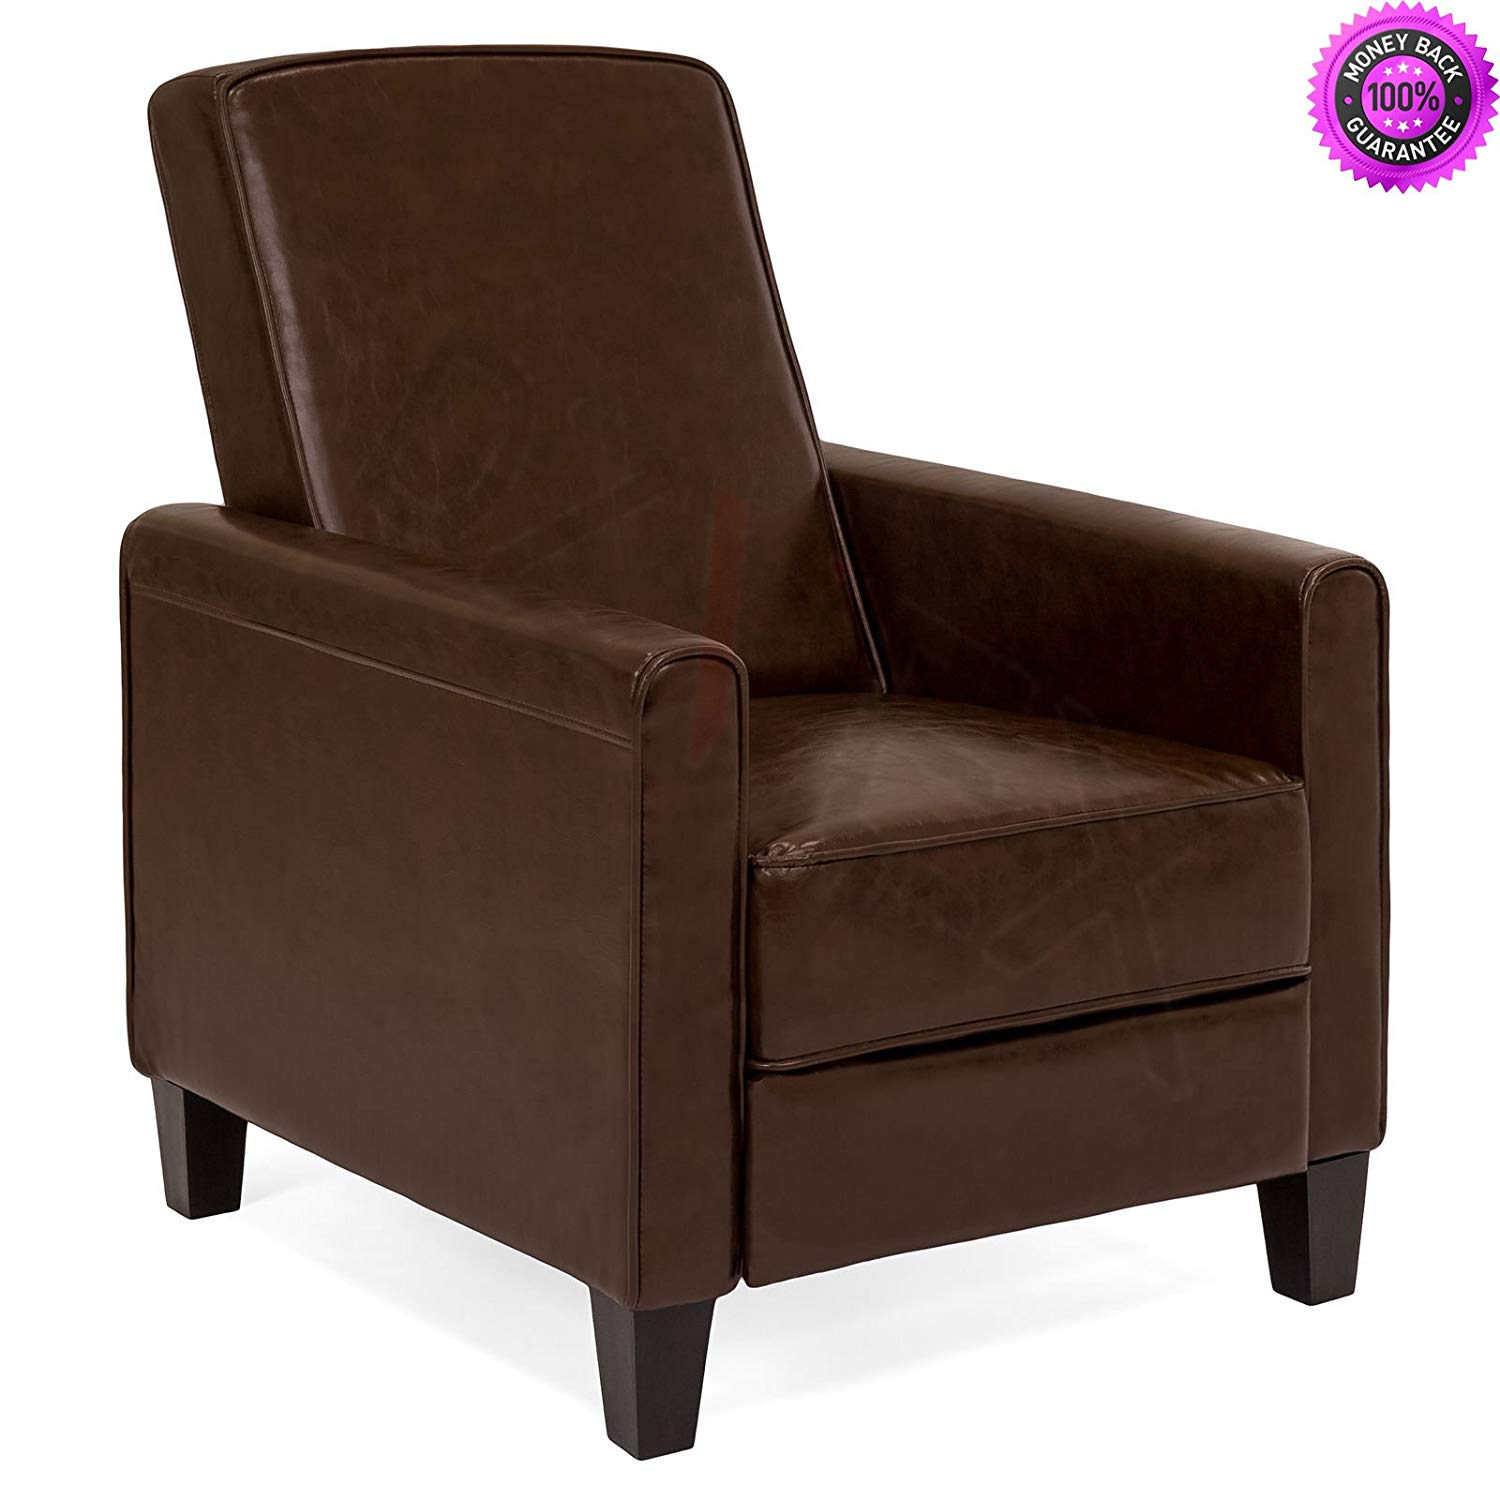 DzVeX__Upholstered Leather Recliner Club Chair (Brown) And chair lifts restaurant chairs stacking chairs waiting room chairs office furniture chair mats for carpet chairs for sale cheap